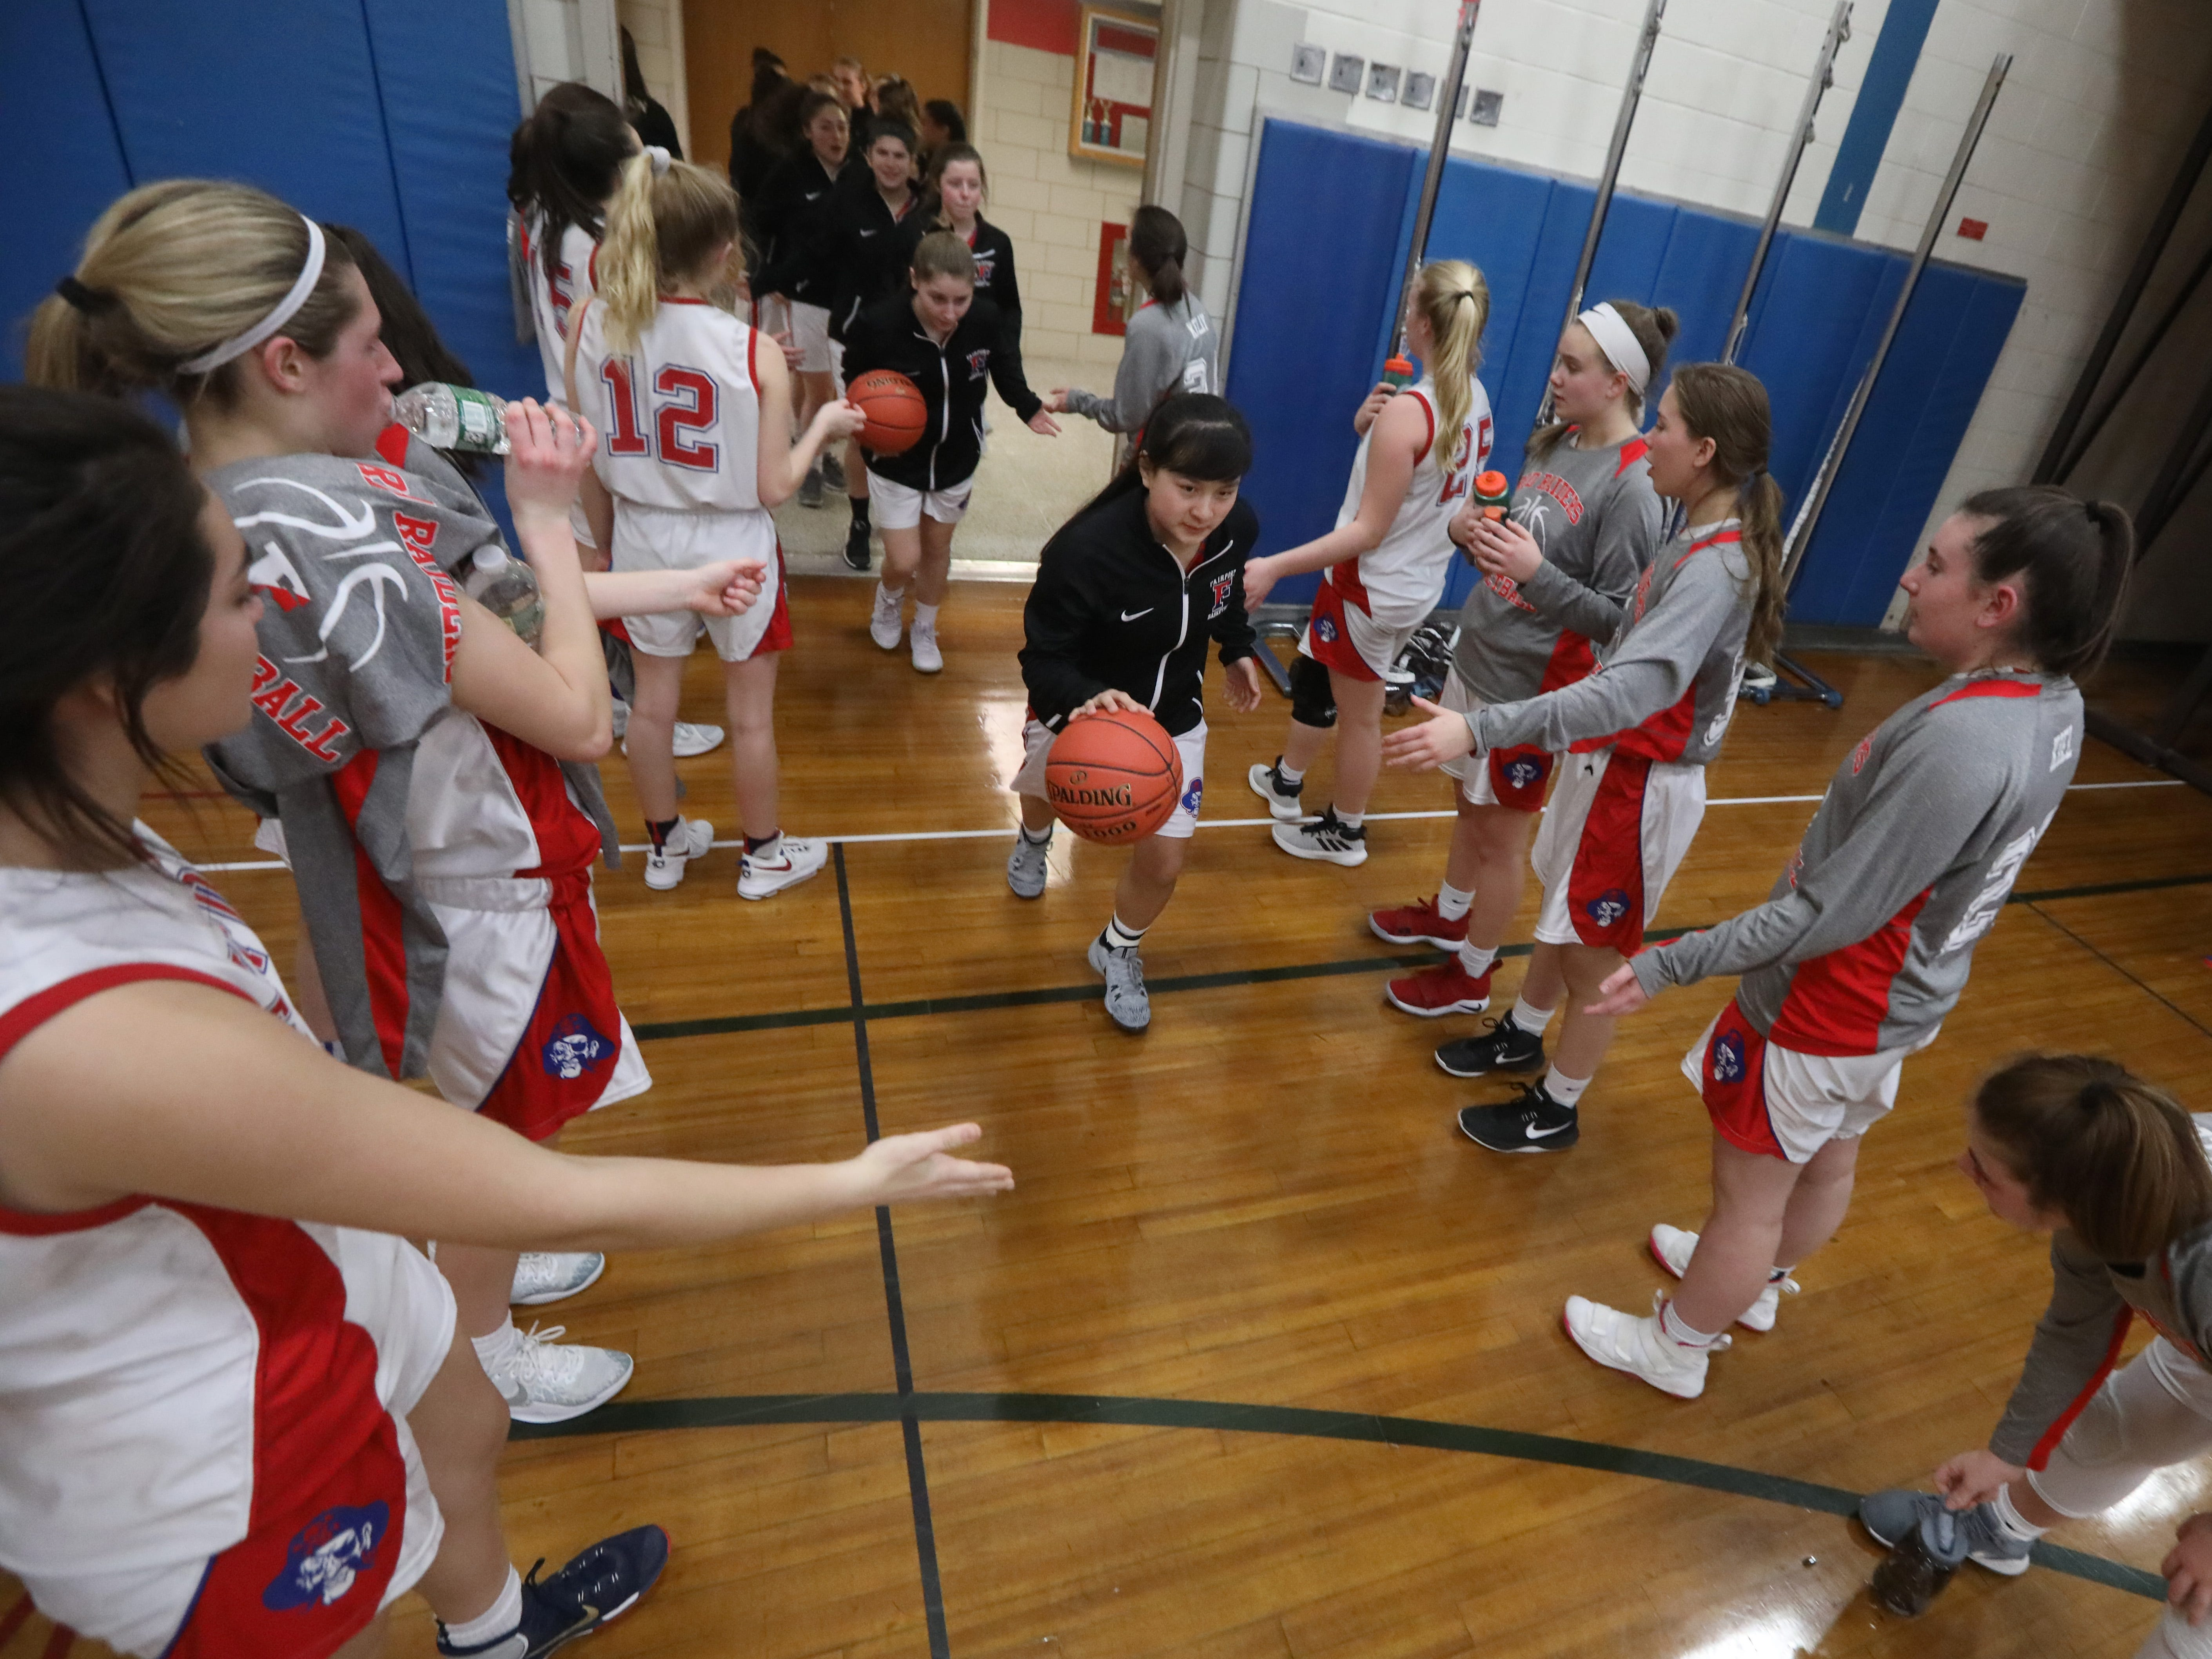 Fairport guard Kate Miller leads the varsity girls out of the locker room and past the cheering JV squad as they take the floor before their game against Rush-Henrietta.